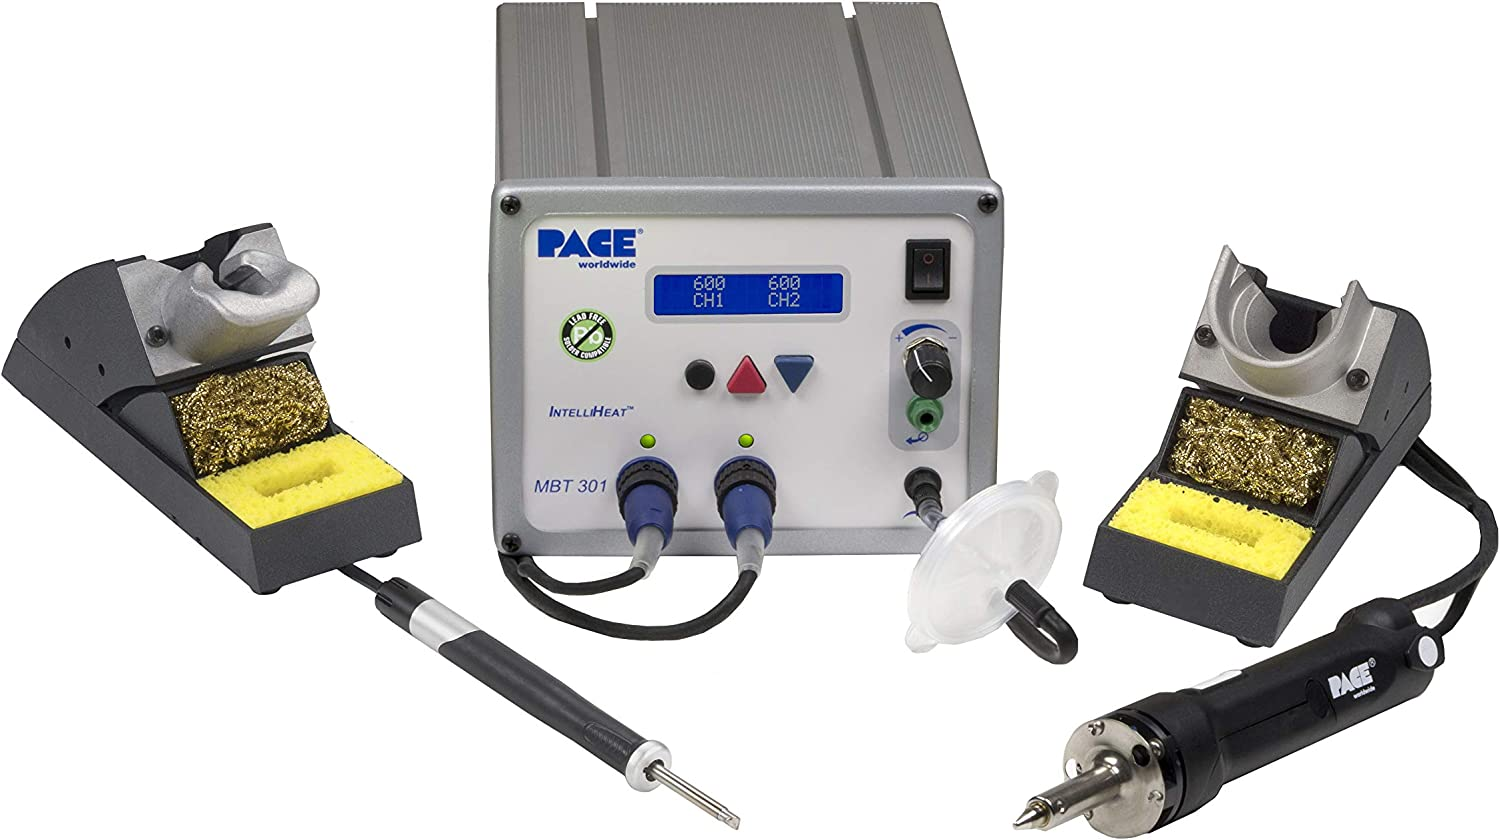 Pace MBT 301 チープ Soldering Desoldering Iron 春の新作続々 with - Station TD-100